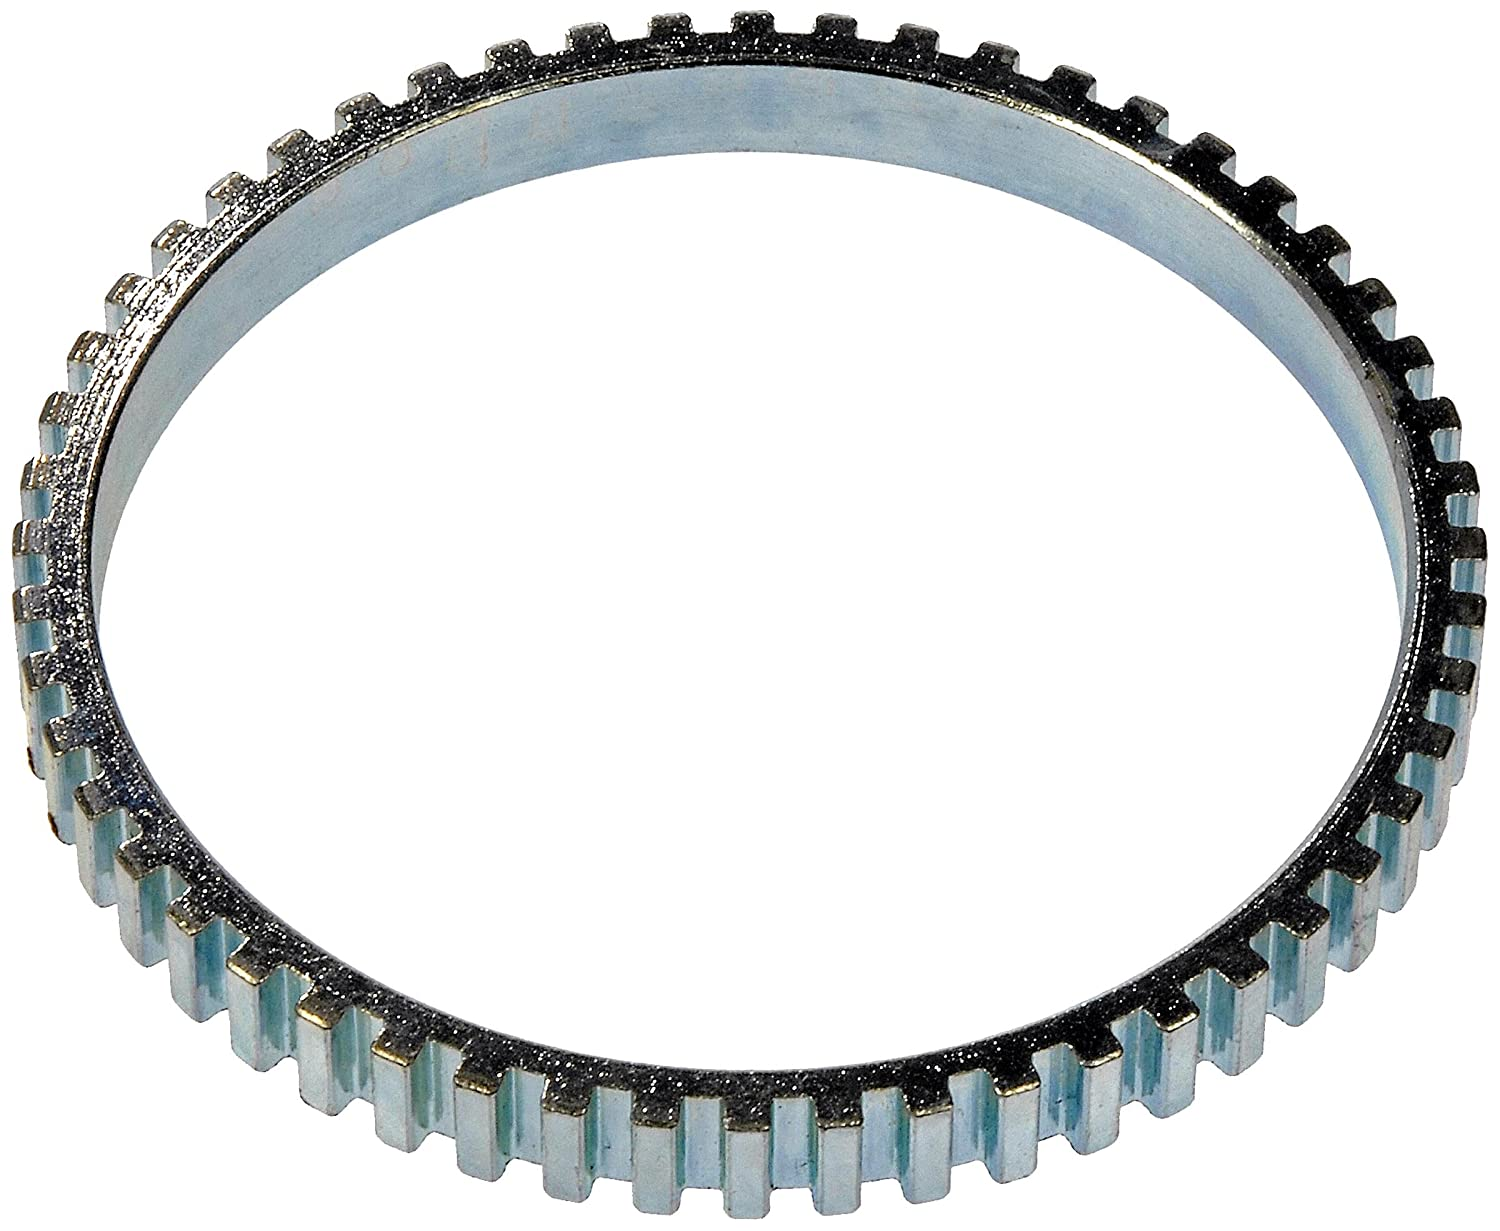 Dorman 917-543 ABS Tone Ring